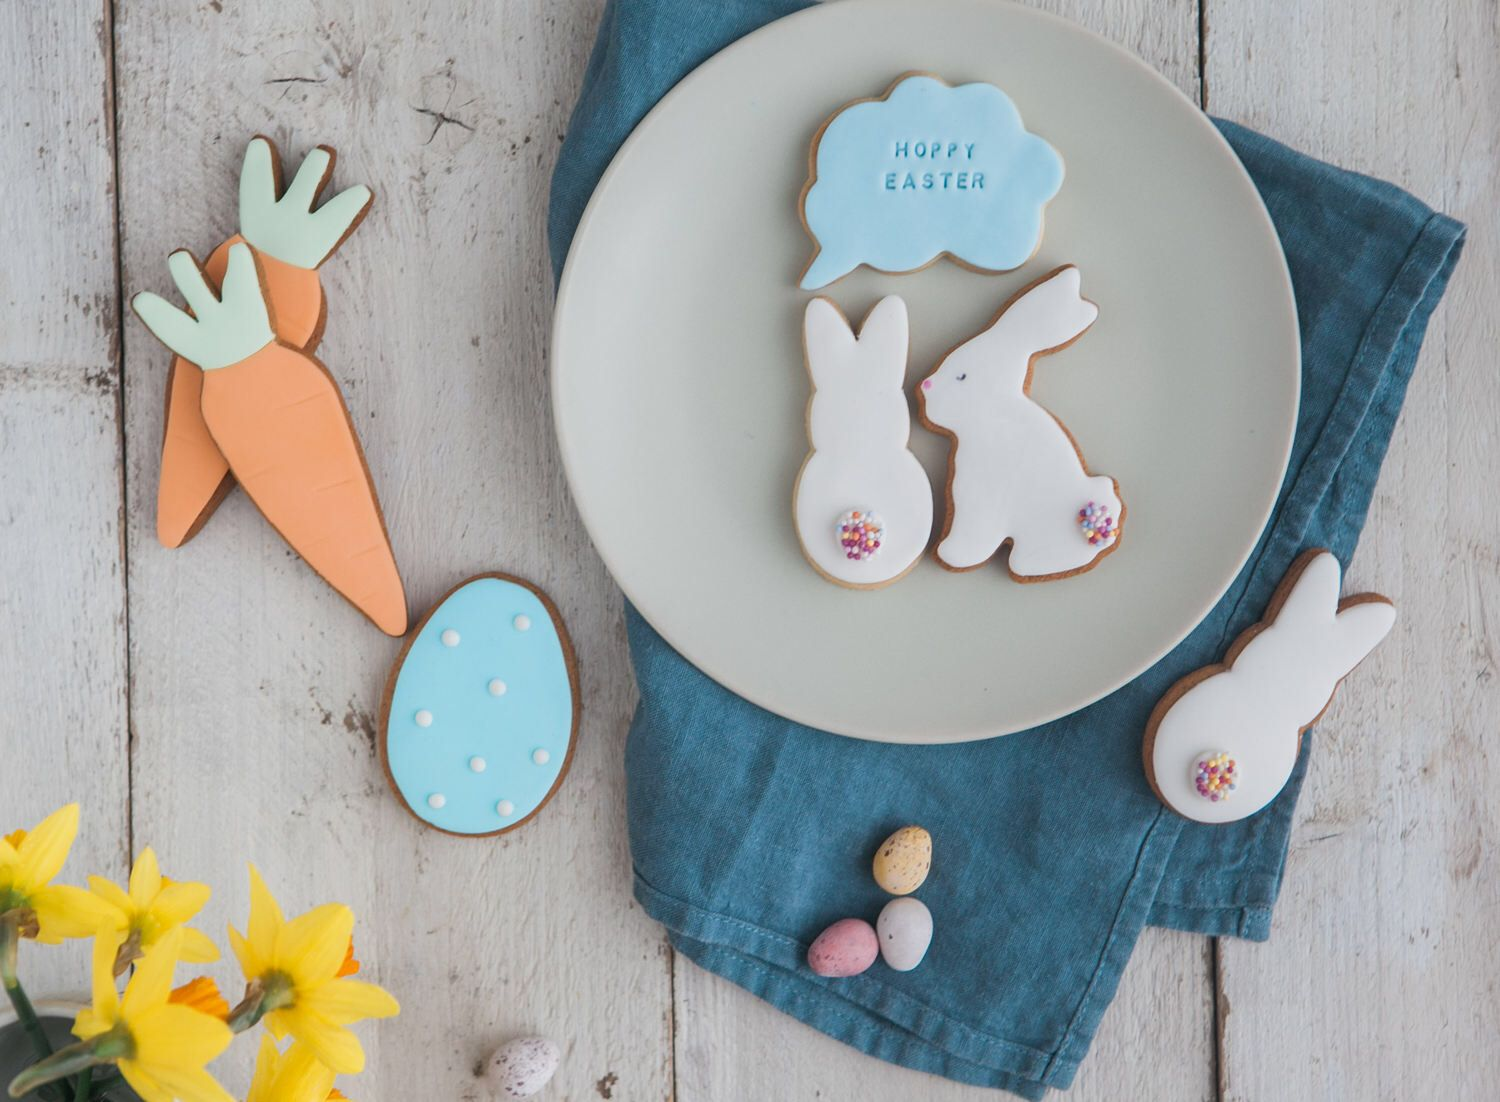 Hoppy easter biscuit gift set bunny biscuits easter cookies hoppy easter biscuit gift set bunny biscuits easter cookies novelty easter biscuit gifts negle Images